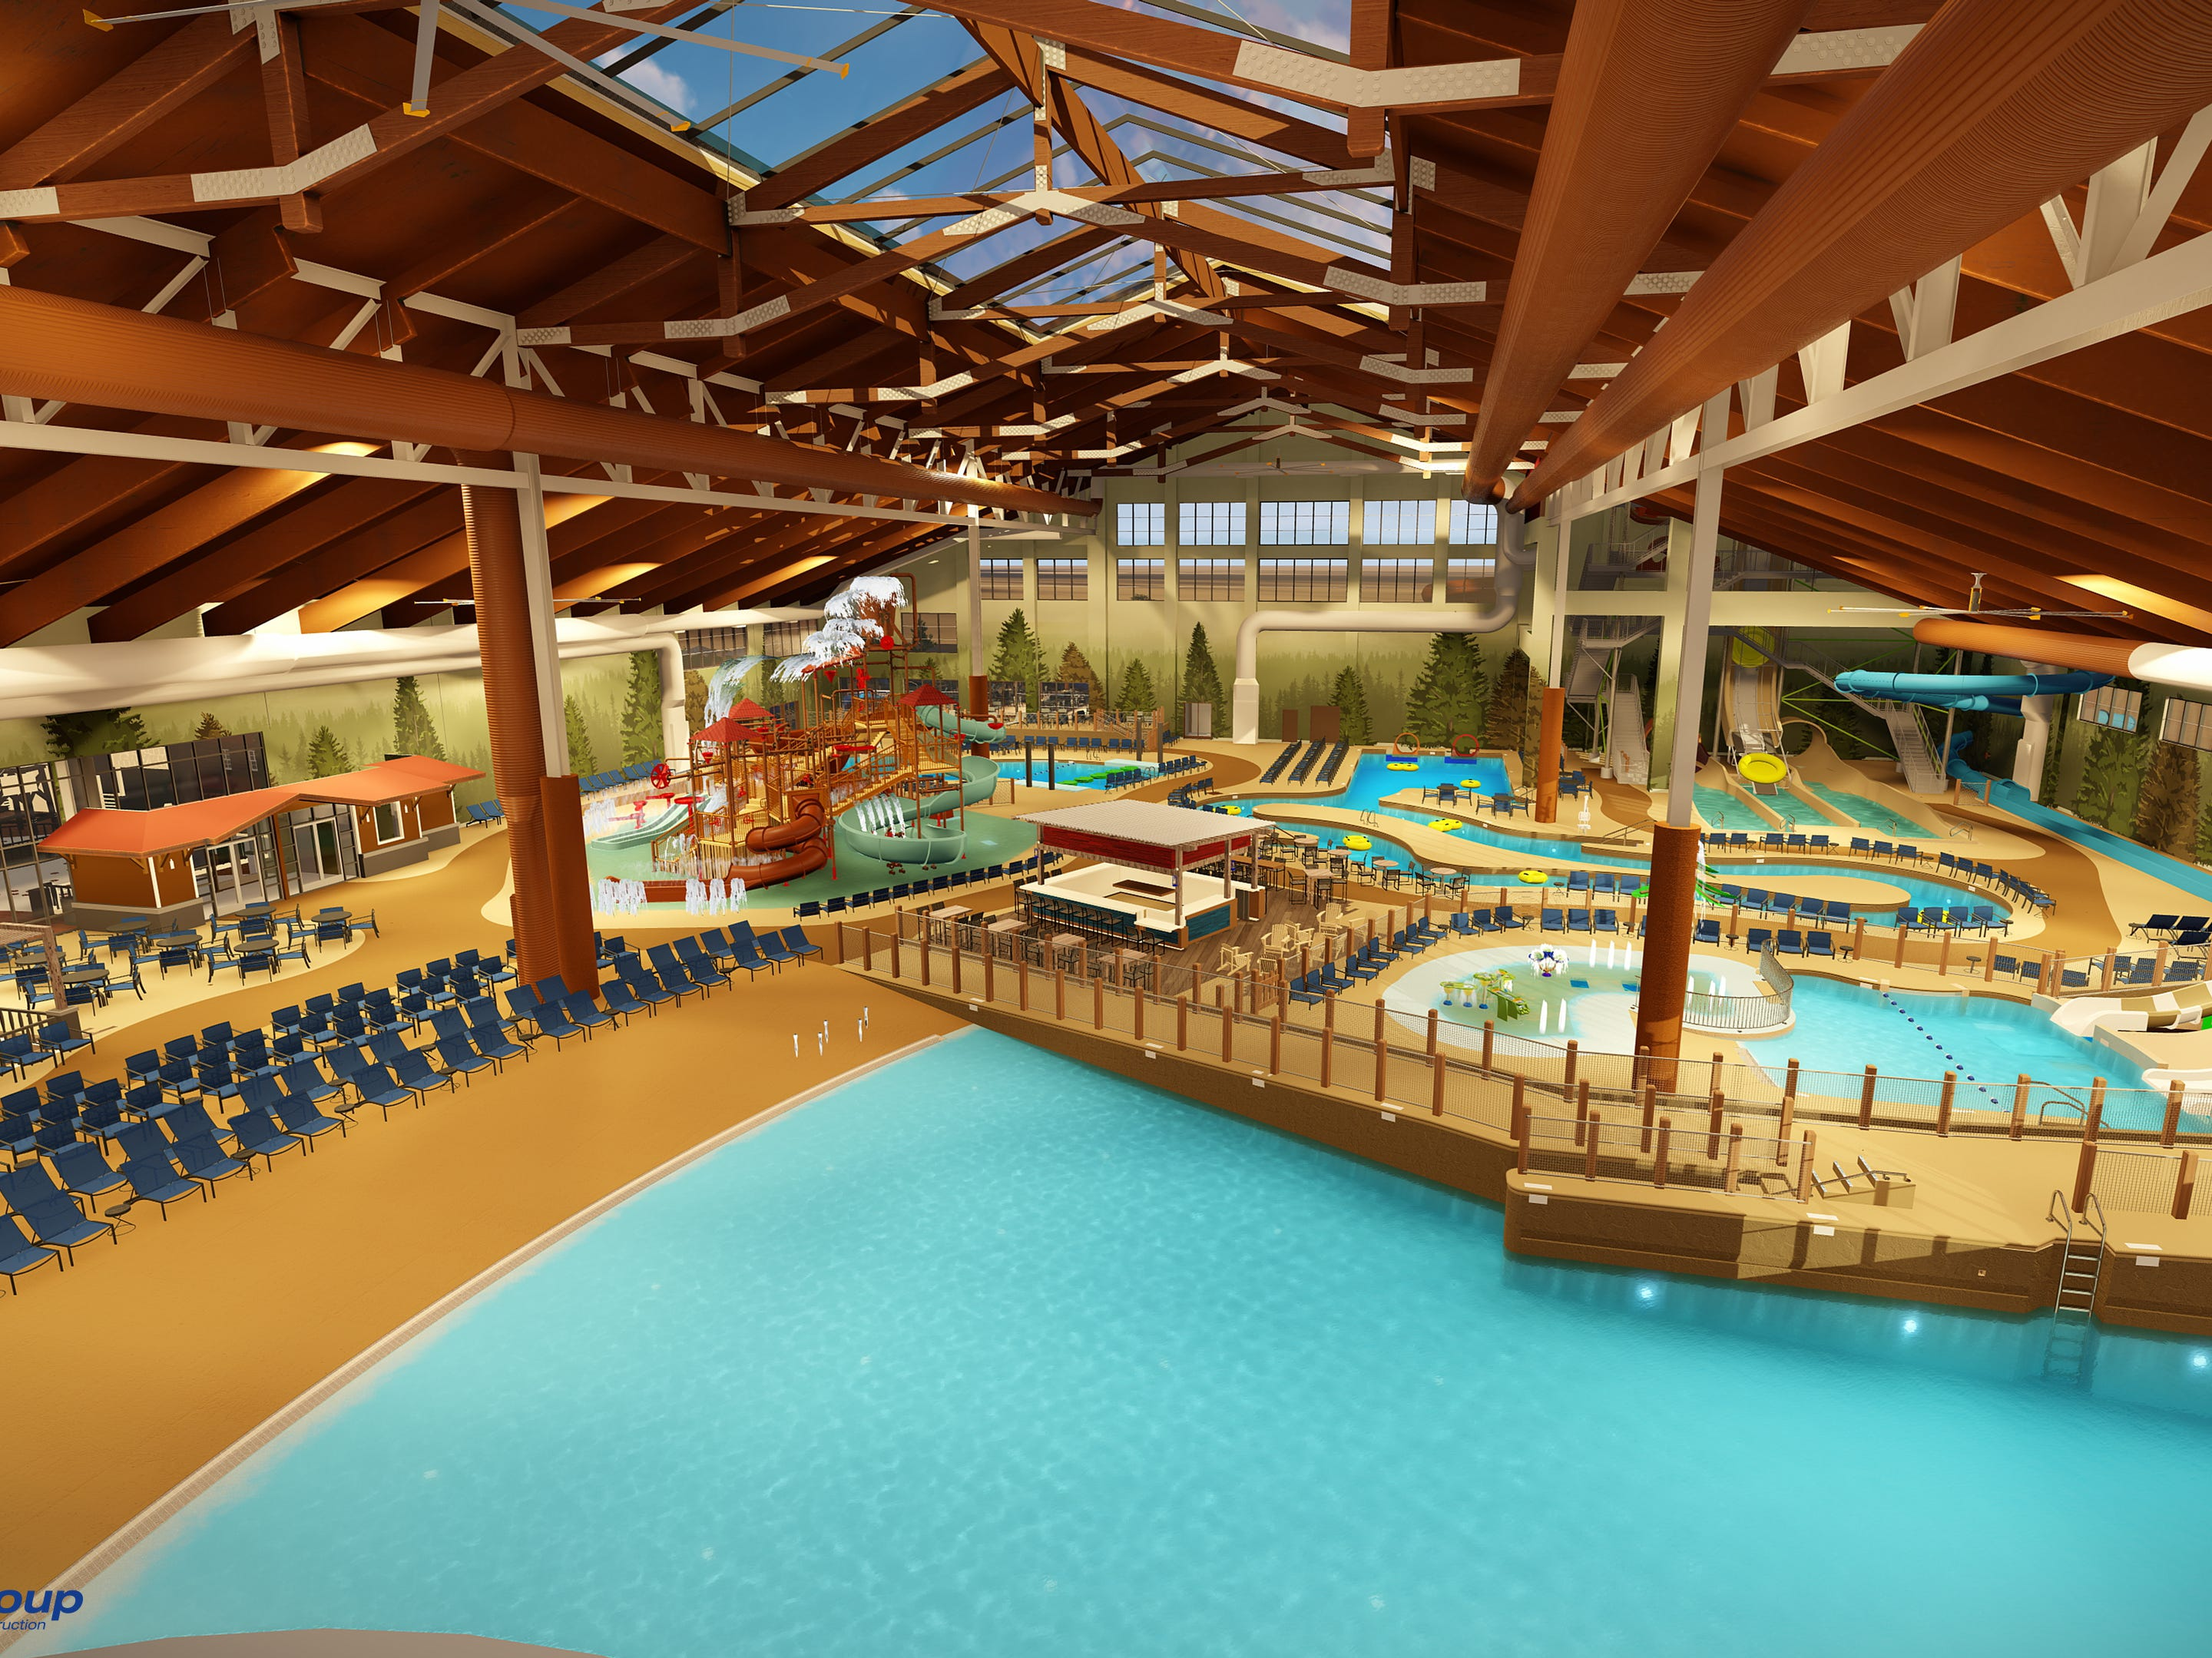 """A rendering of the inside of the Great Wolf Lodge Arizona's water park. The 85,000 square foot facility will be climate controlled at 84 degrees and host several slides, raft rides, a wave pool and an area especially for kids under 42"""" tall."""